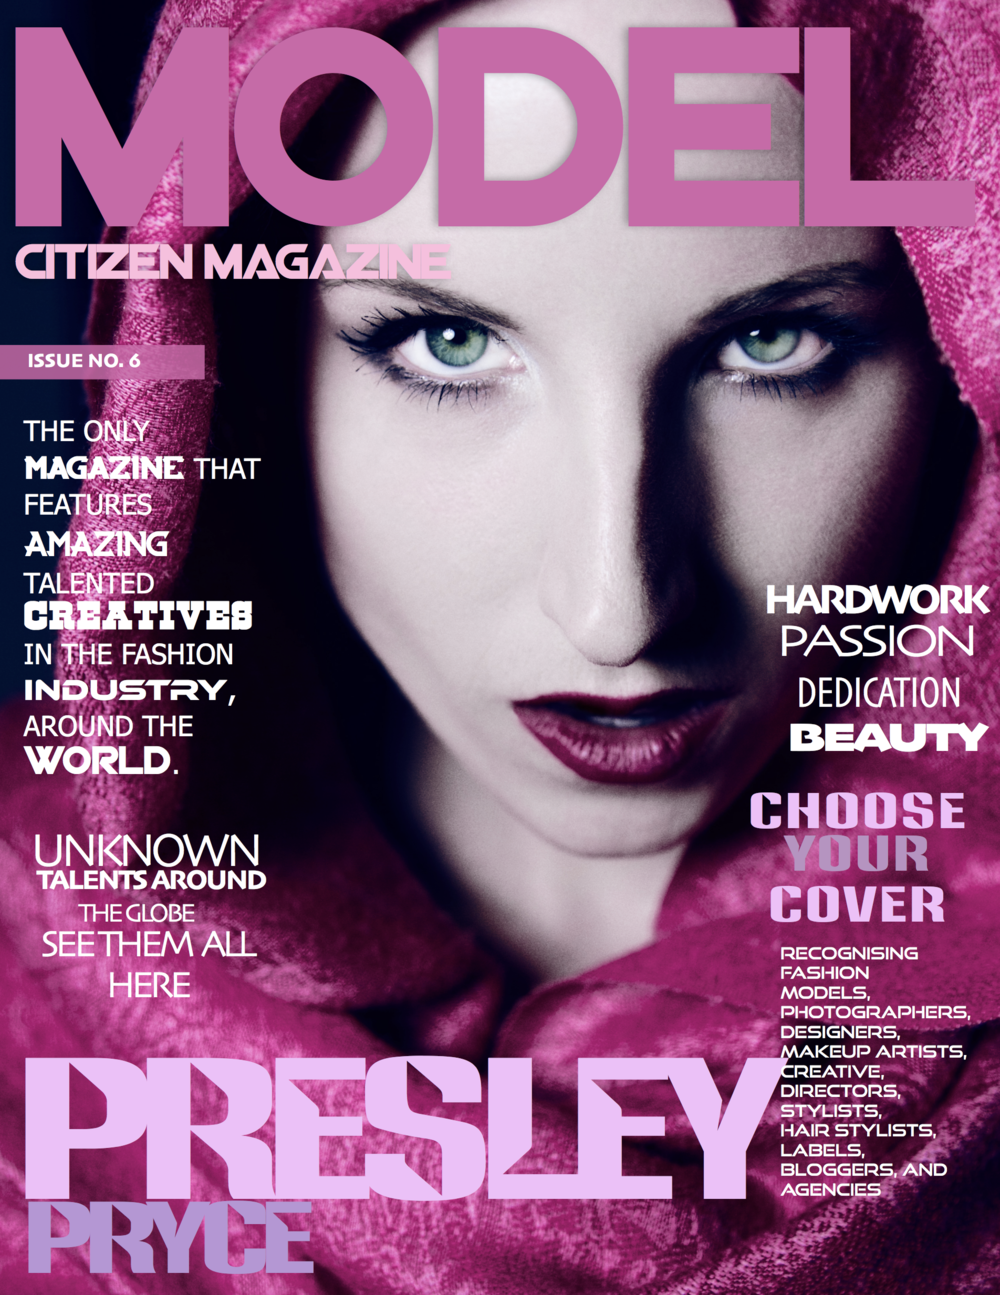 Presley Pryce, Model Citizen Magazine